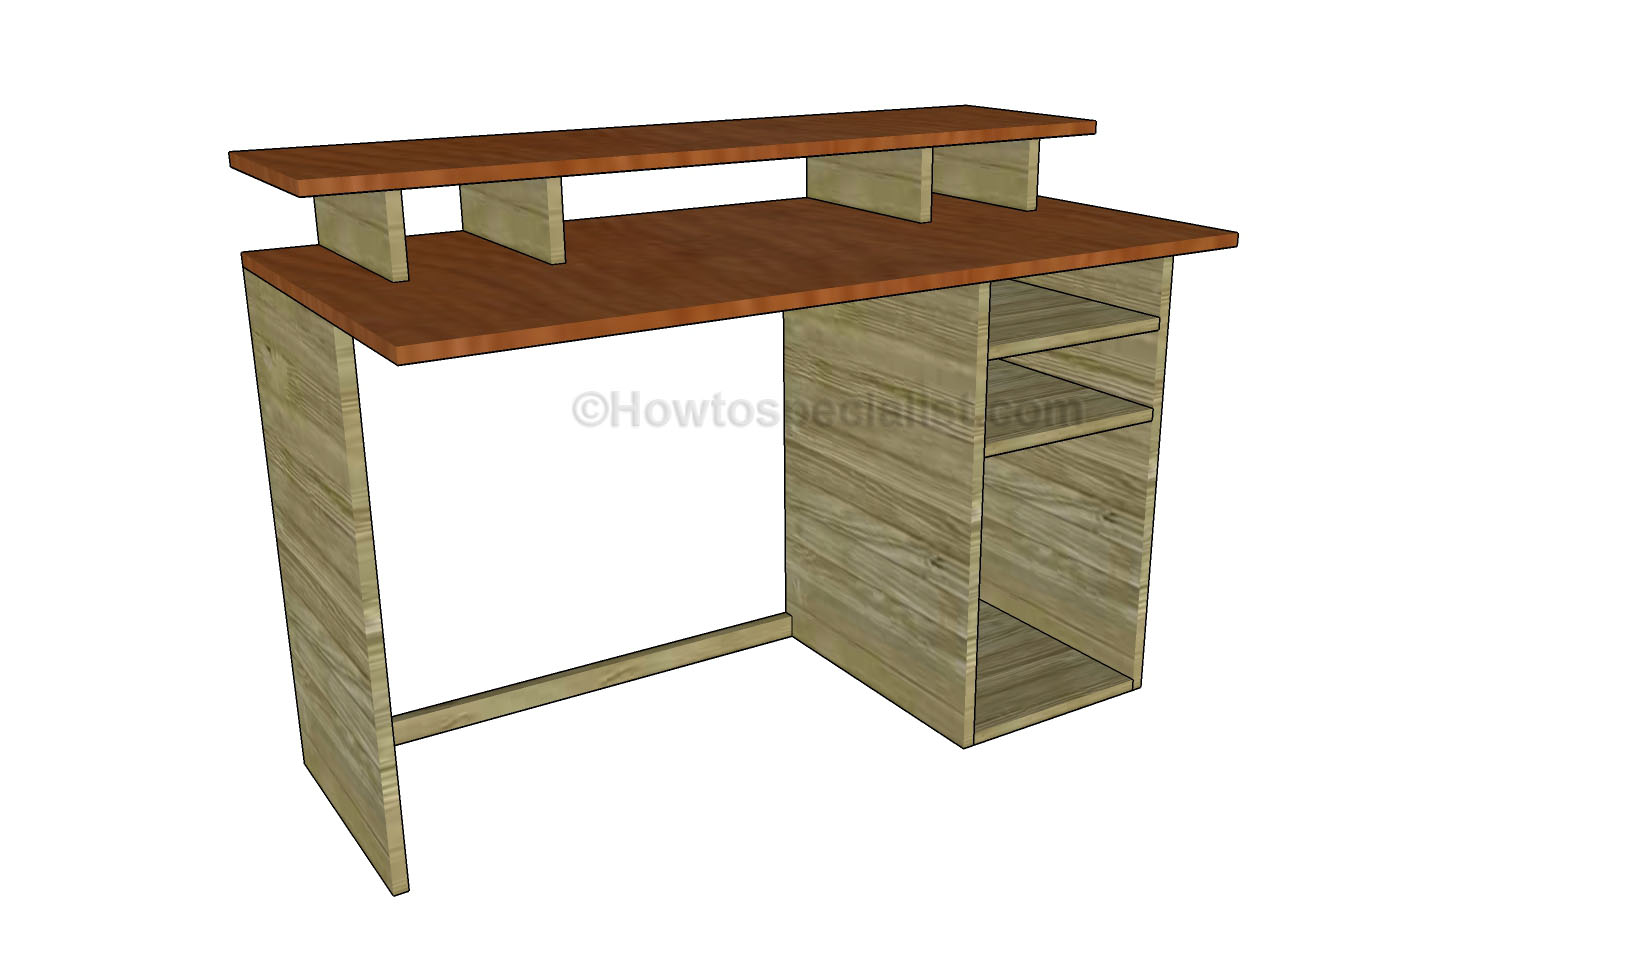 Free Computer Desk Plans Howtospecialist How To Build Step By.  Remodelaholic Custom Computer Desk Plans. Furniture Diy Computer